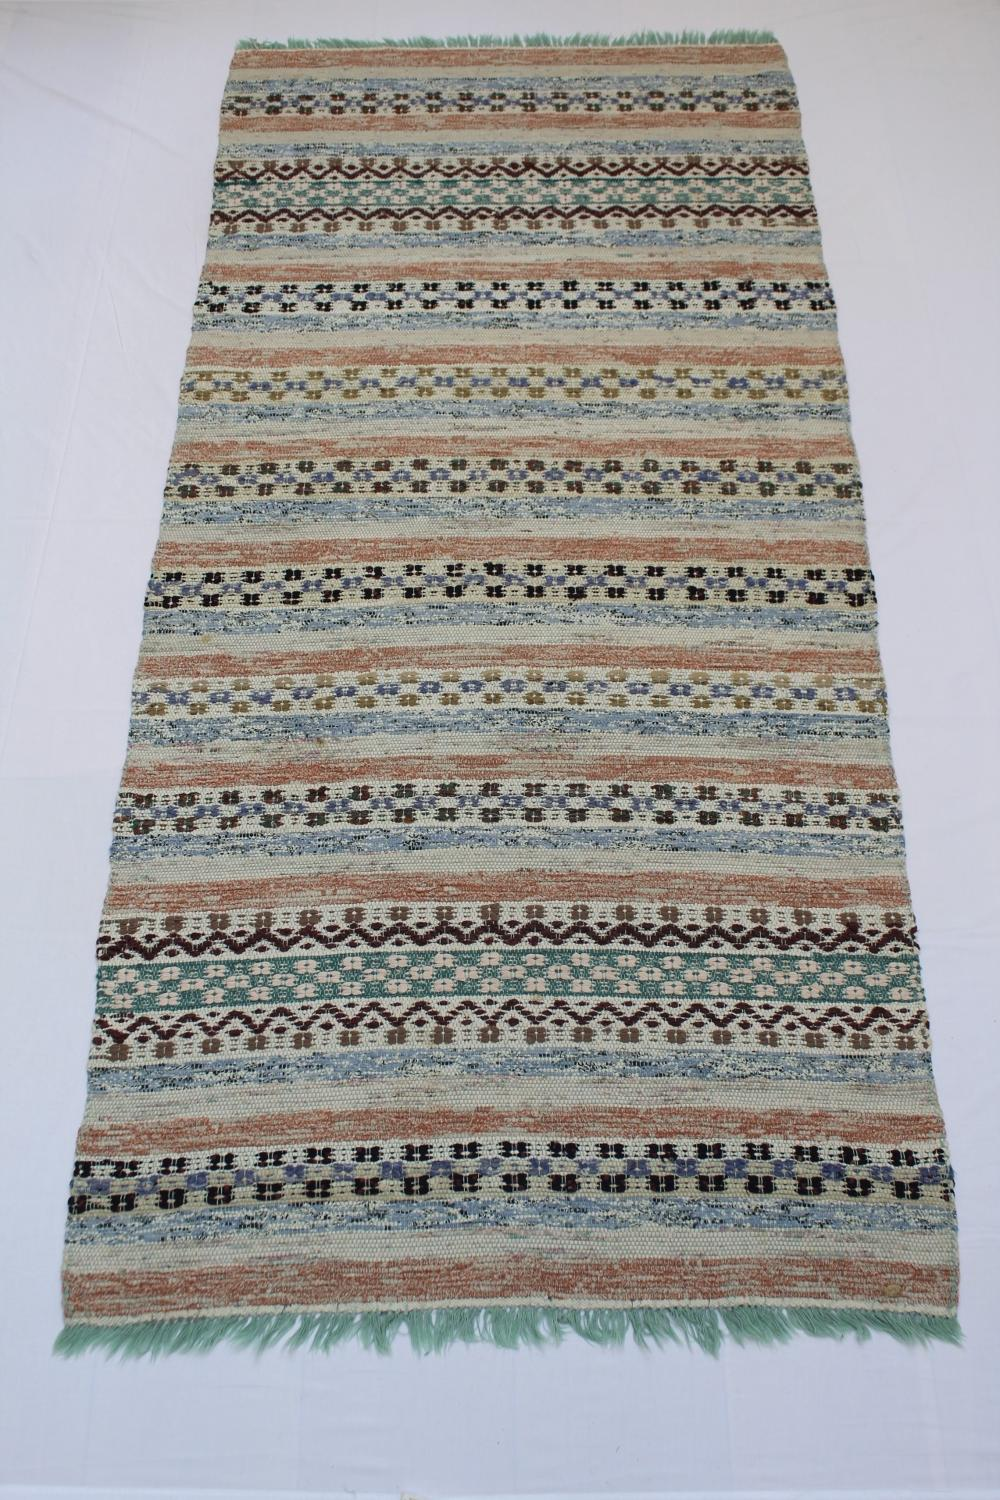 Swedish Handwoven Rug Circa 1950/60's